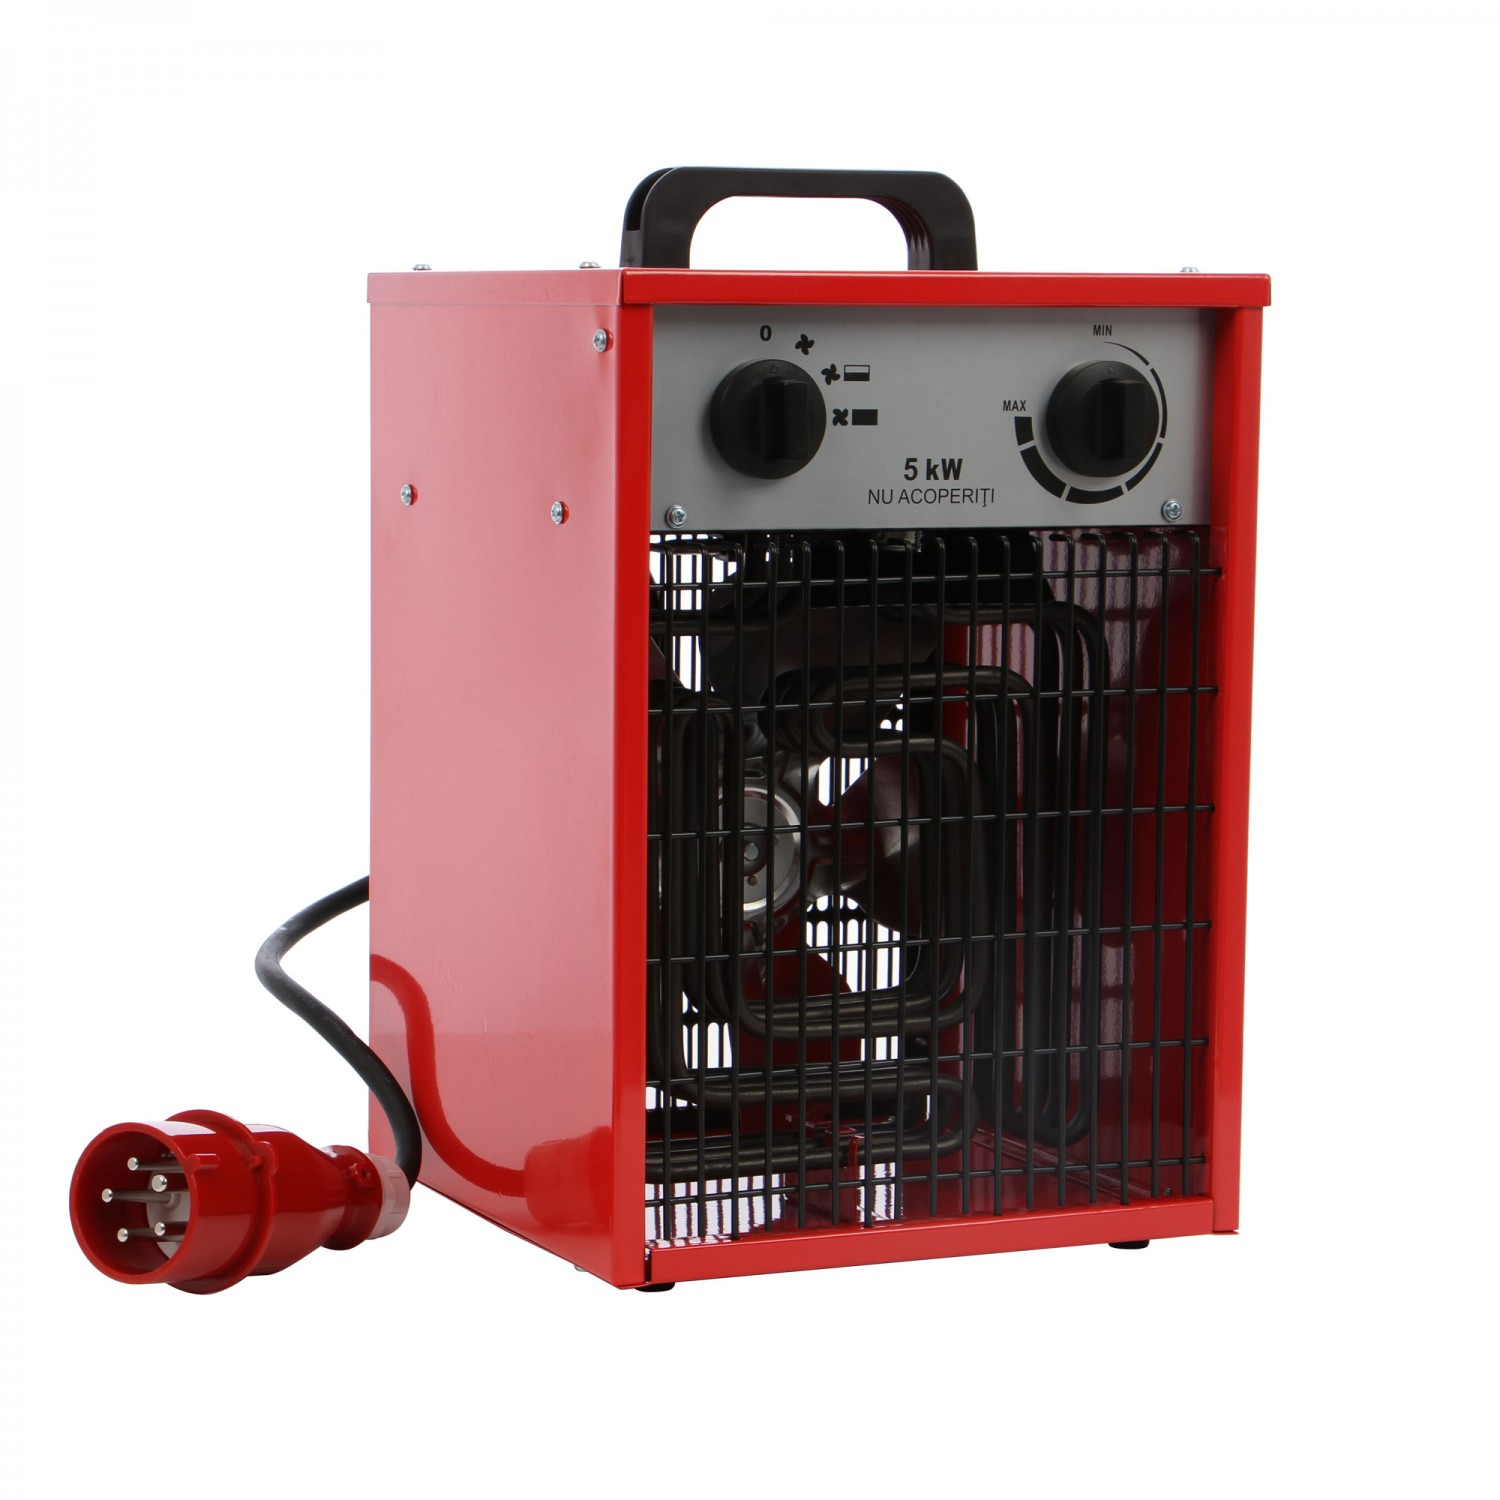 Aeroterma electrica Paxton EH5-380S, 5 kW, 380 - 400 V